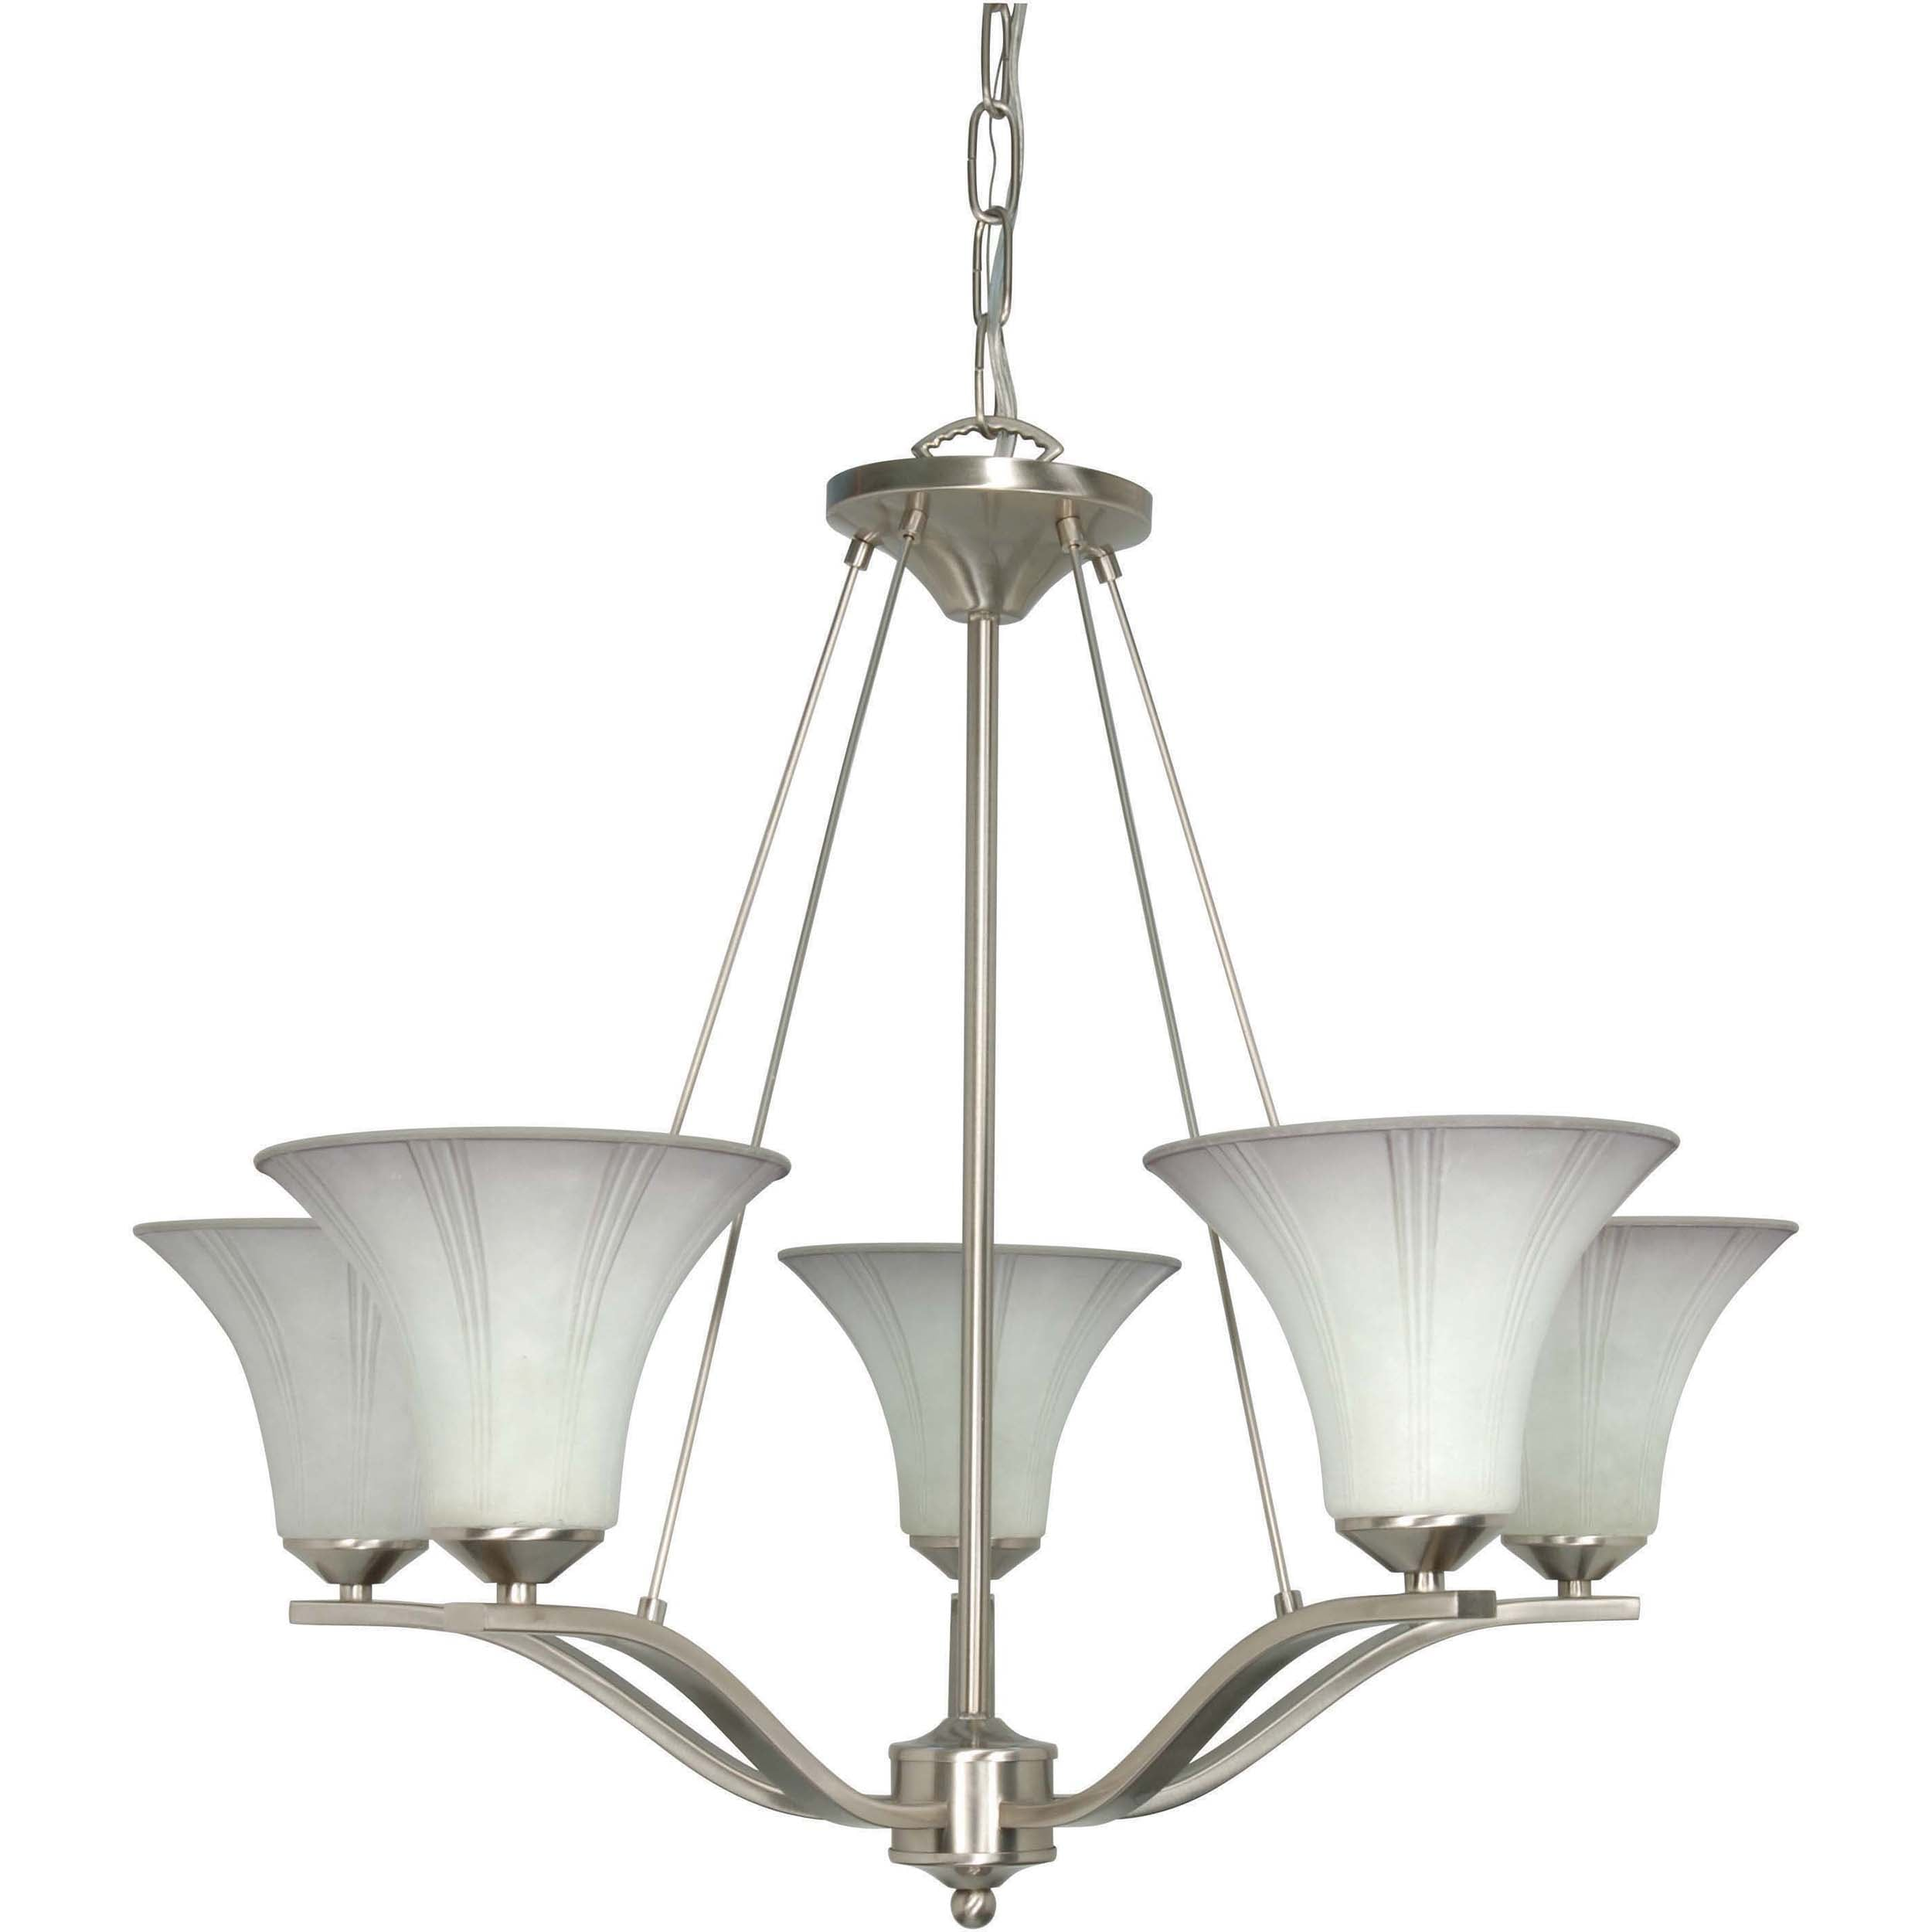 Delano 5 Light Chandelier Brushed Nickel with Grey Suede Glass